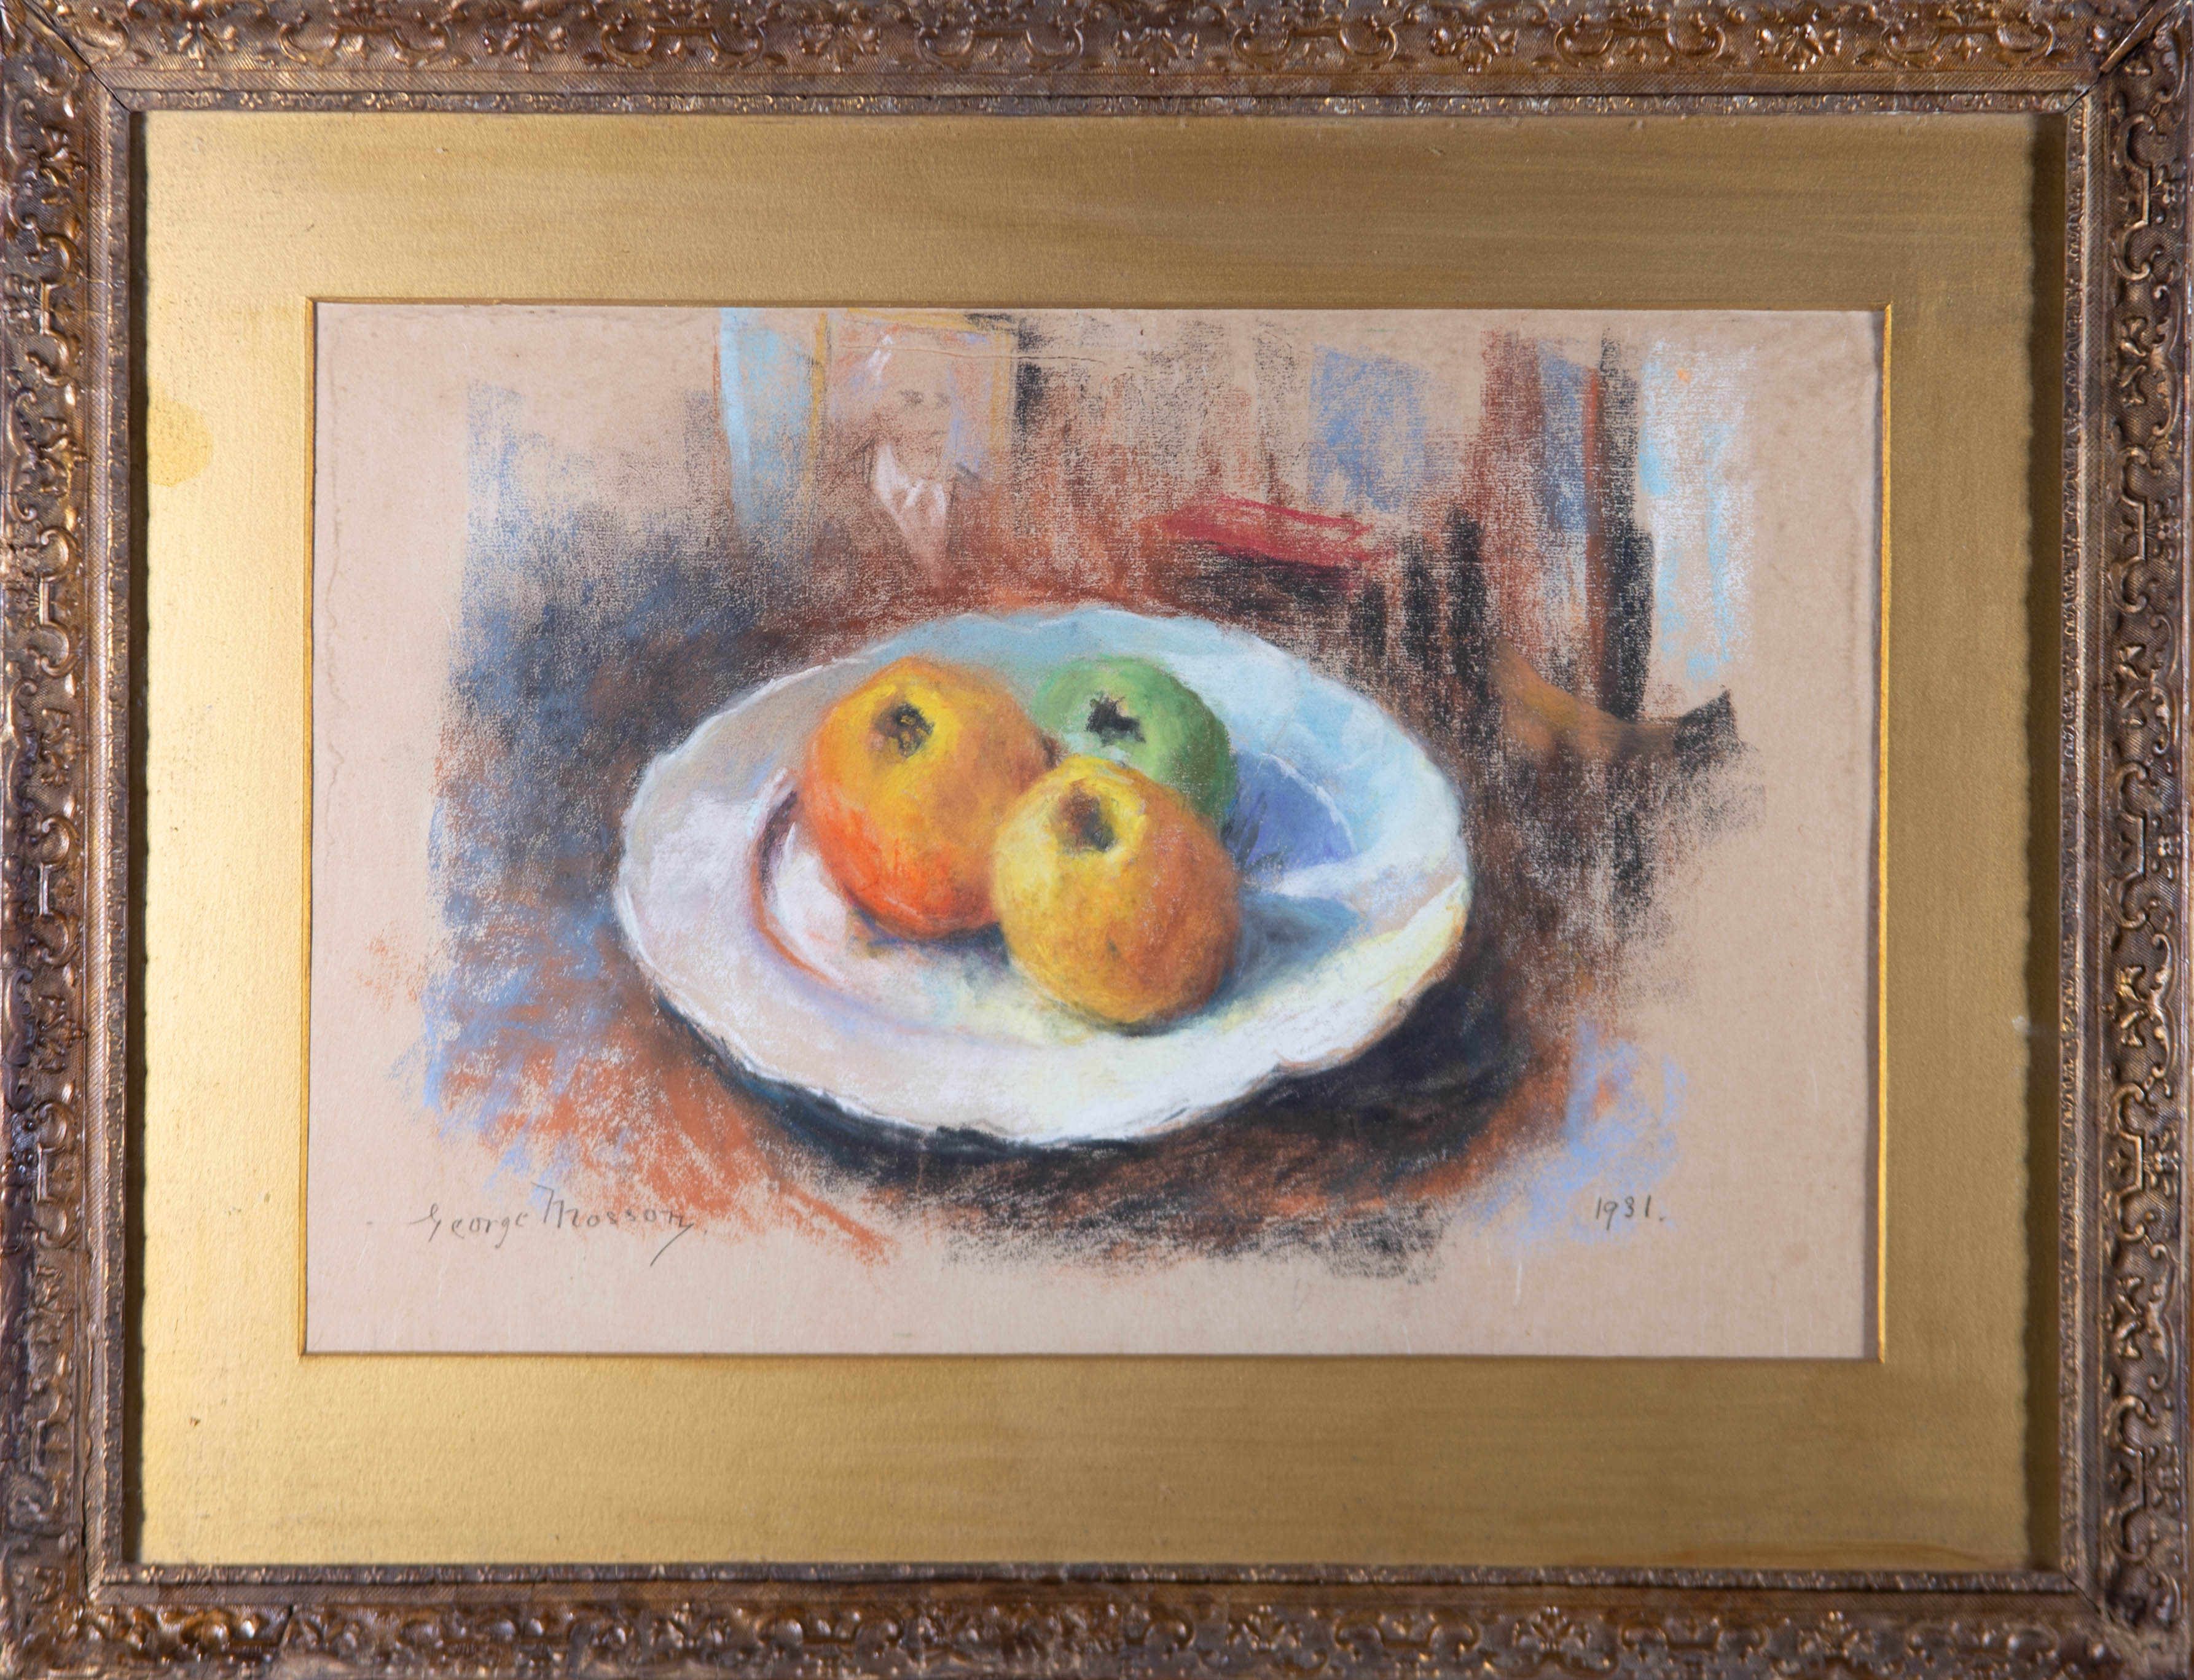 George Mosson (1851-1933) - 1931 Pastel, Still Life with Three Apples